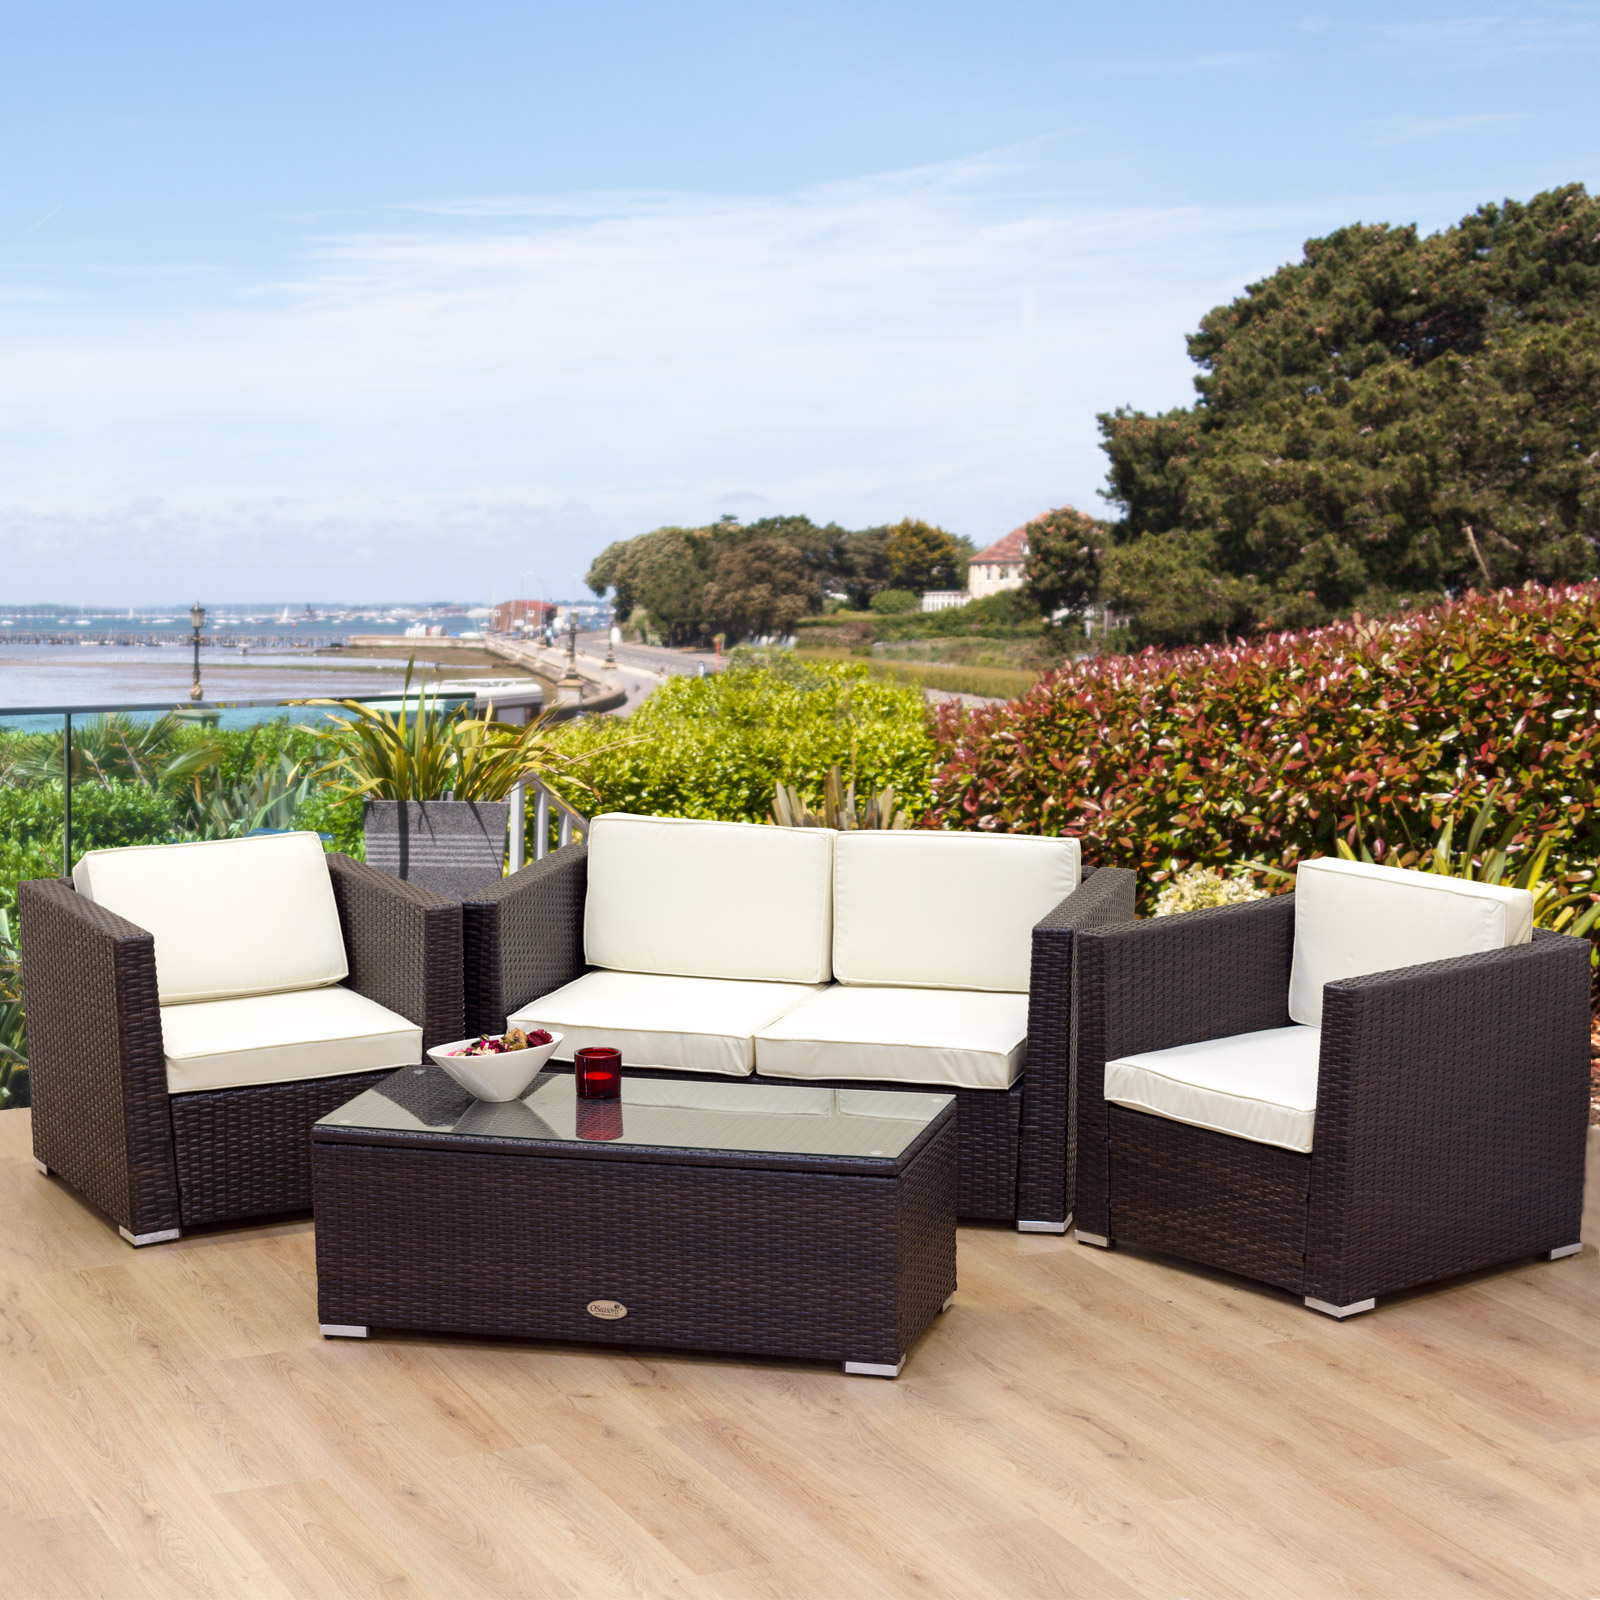 Awesome Rattan Garden Furniture HGNVCOM